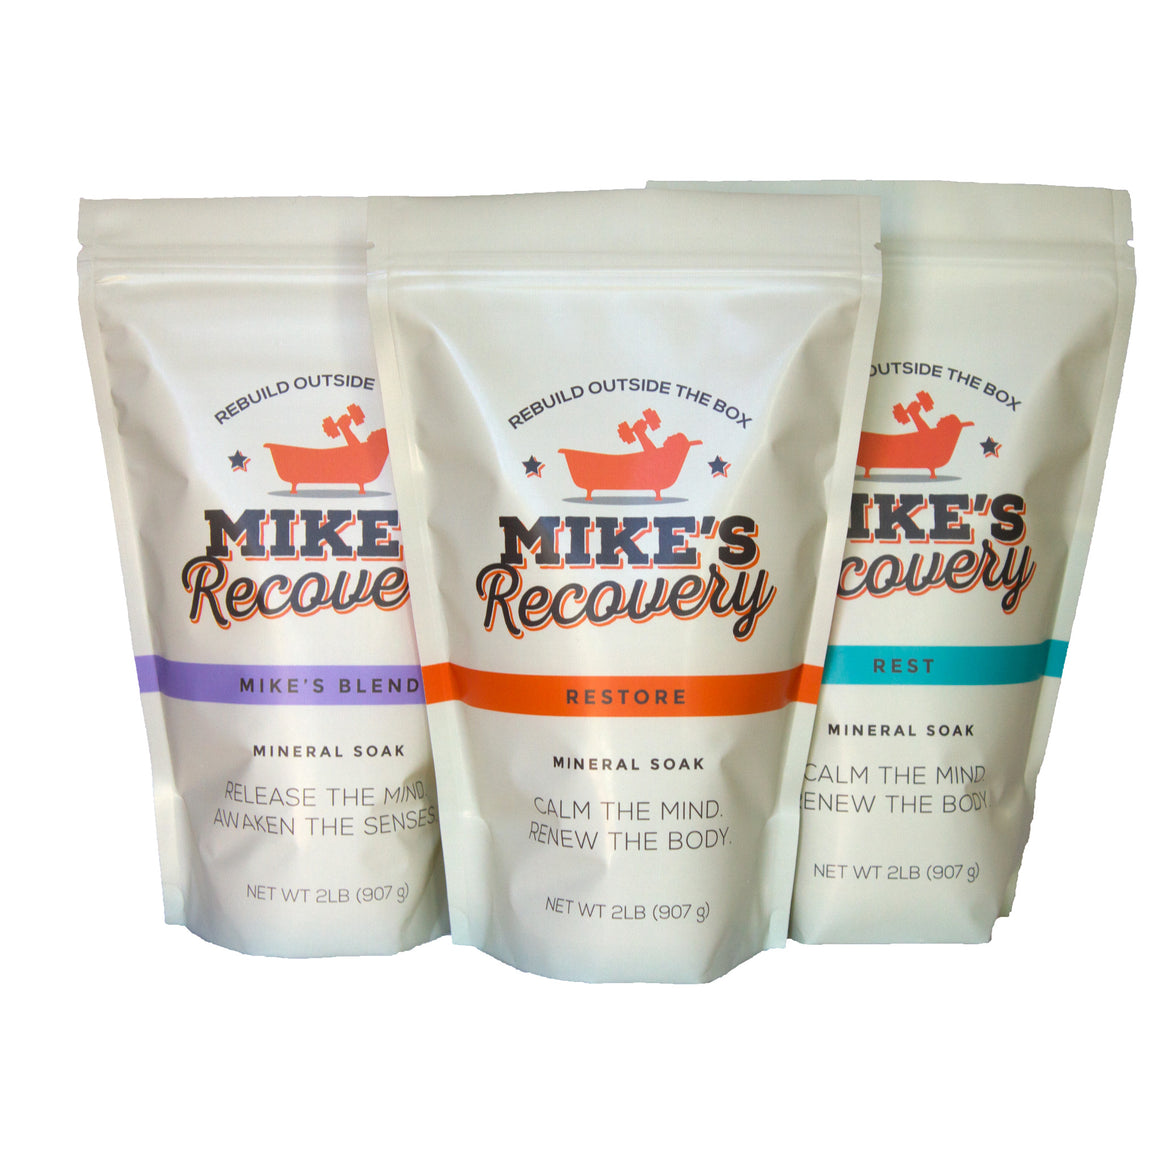 The Indispensable Mineral Soak 2lb Pouch Combo